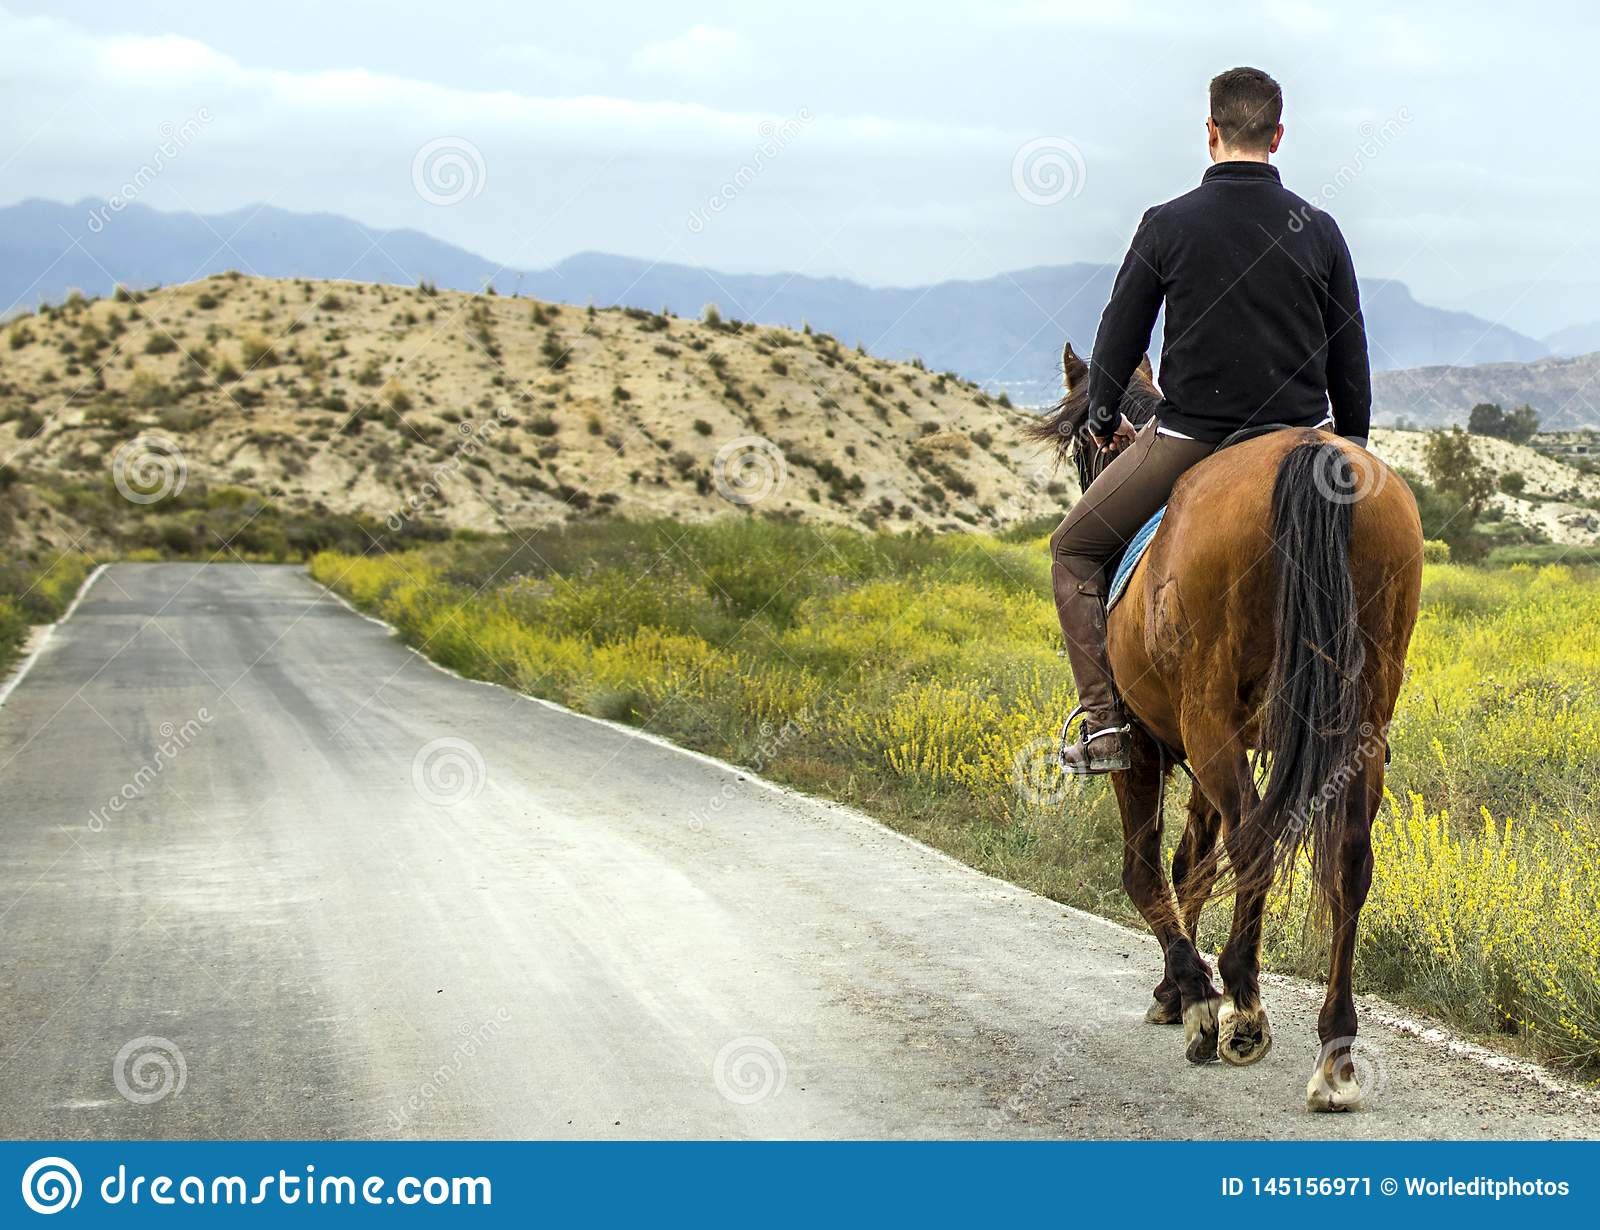 A young rider riding his horse on a mountain road